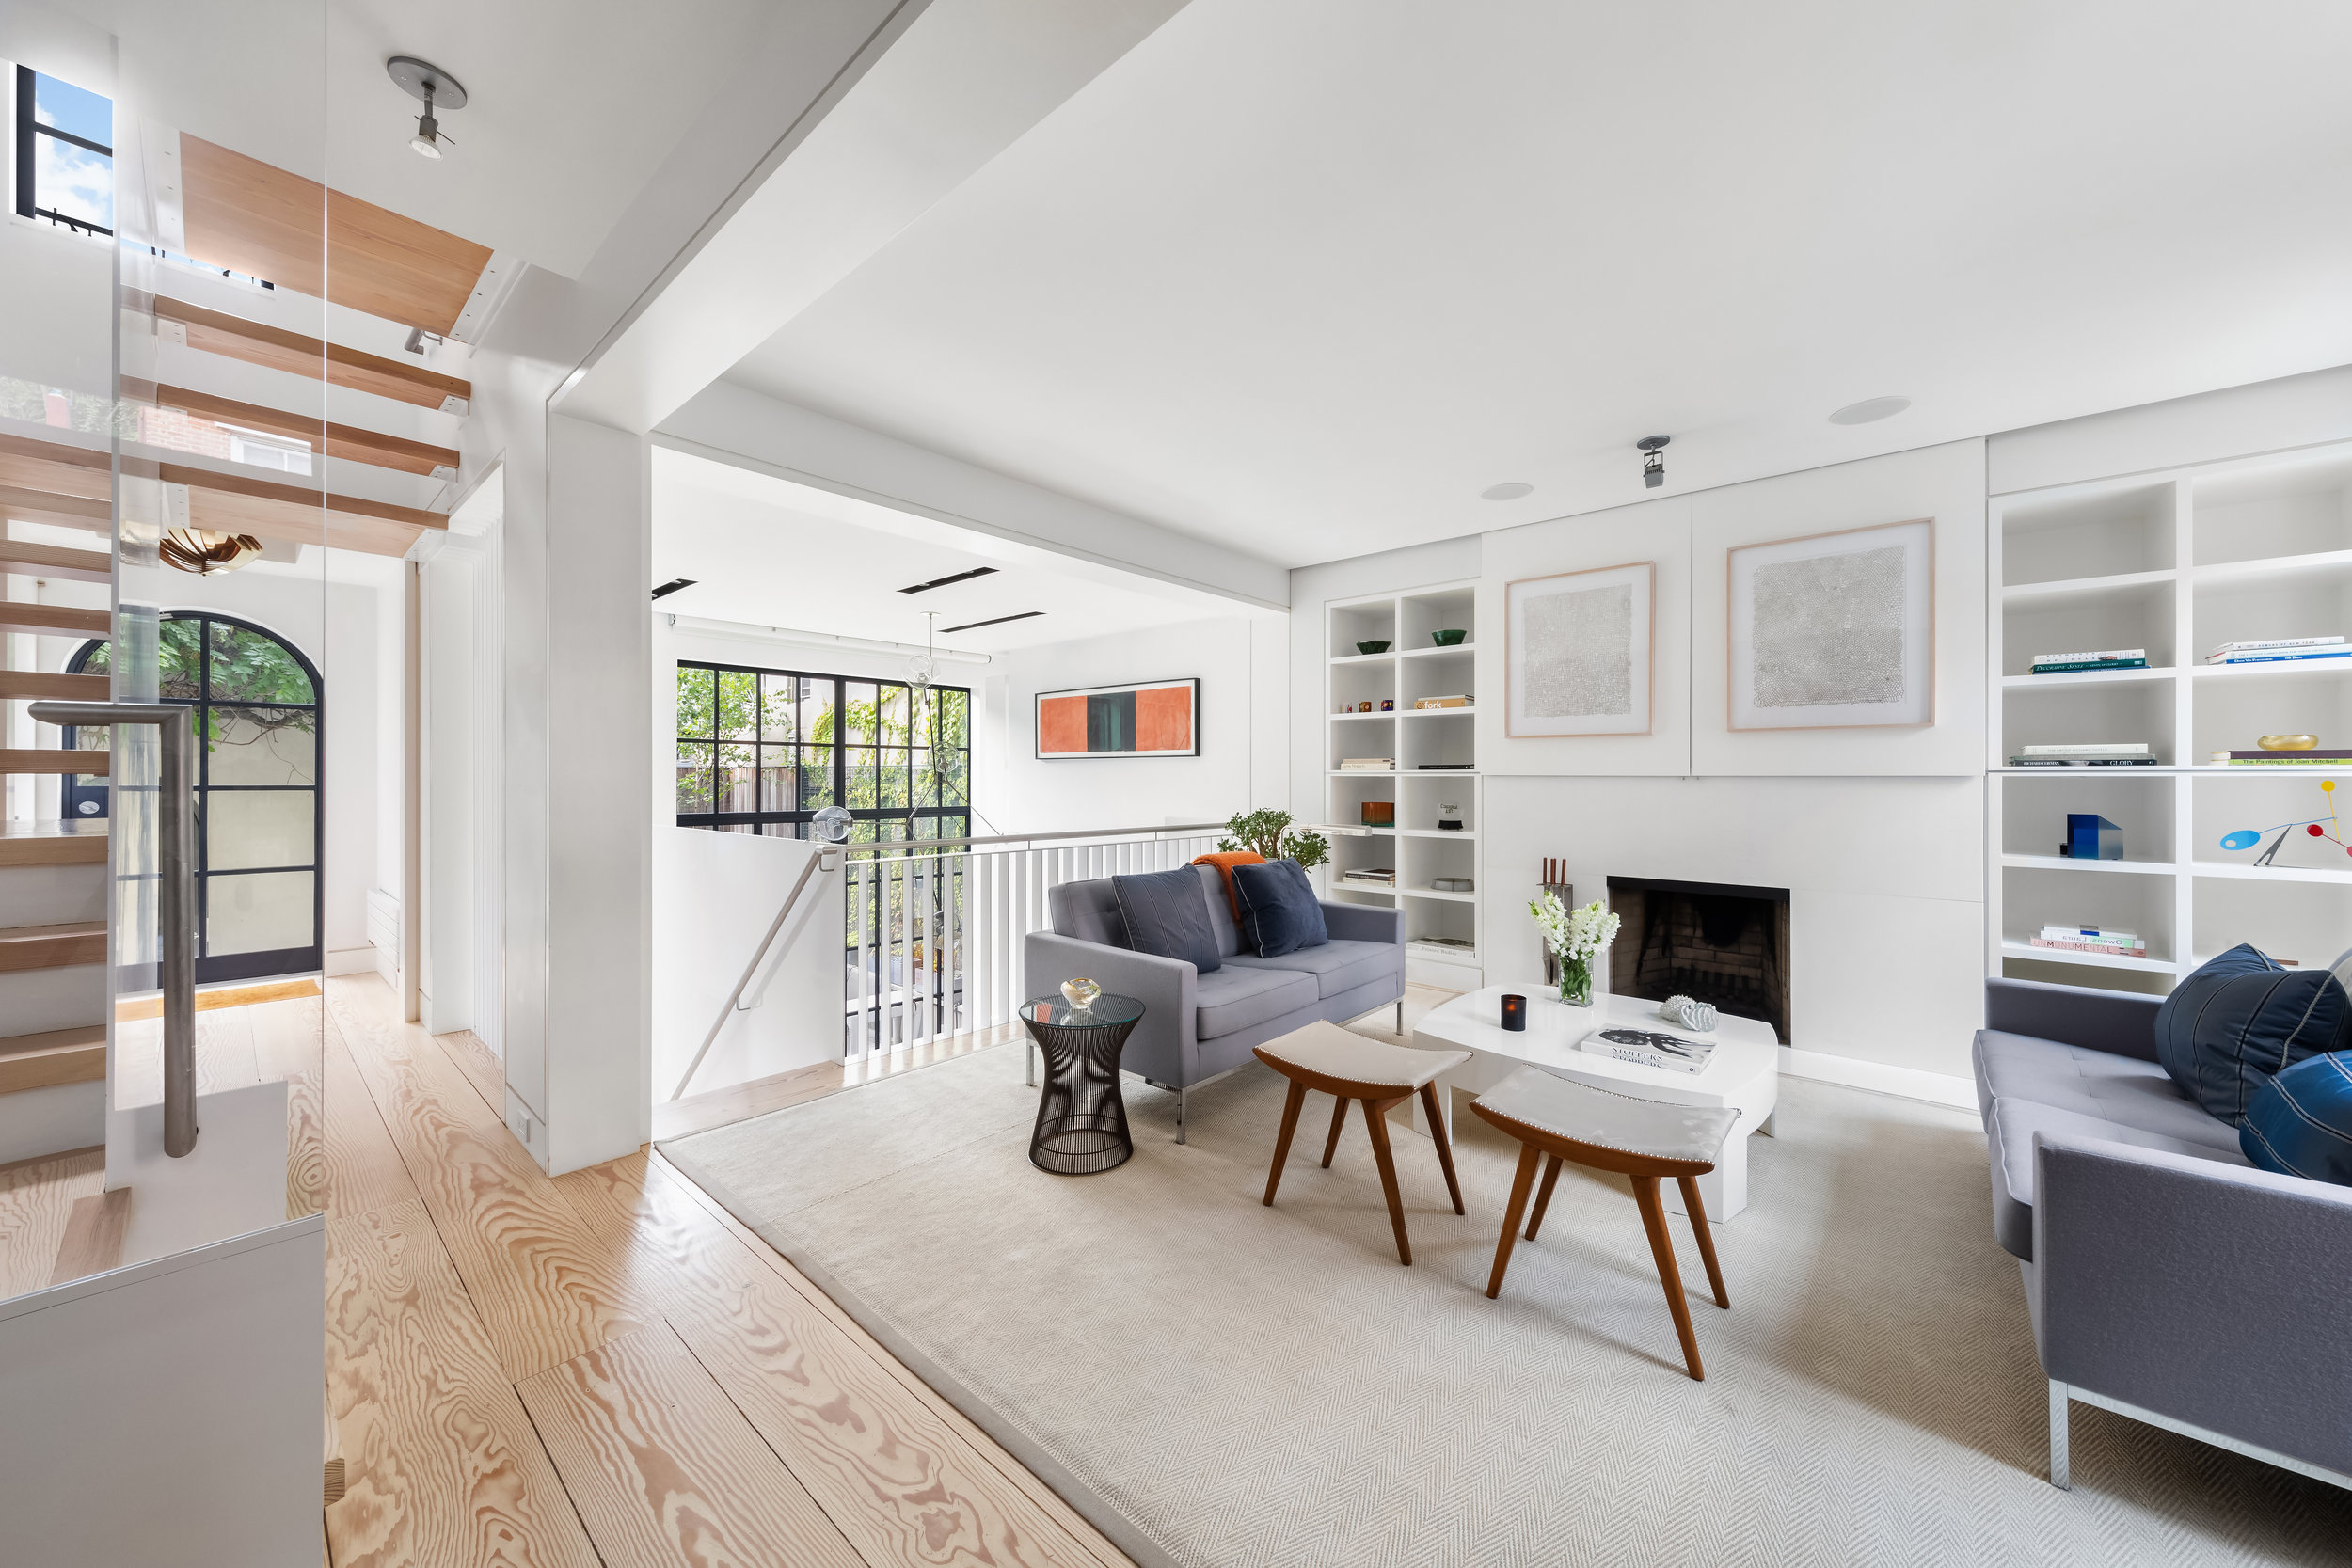 Tour A Rare Turn-Key Townhouse In West Village Asking $7,775,000